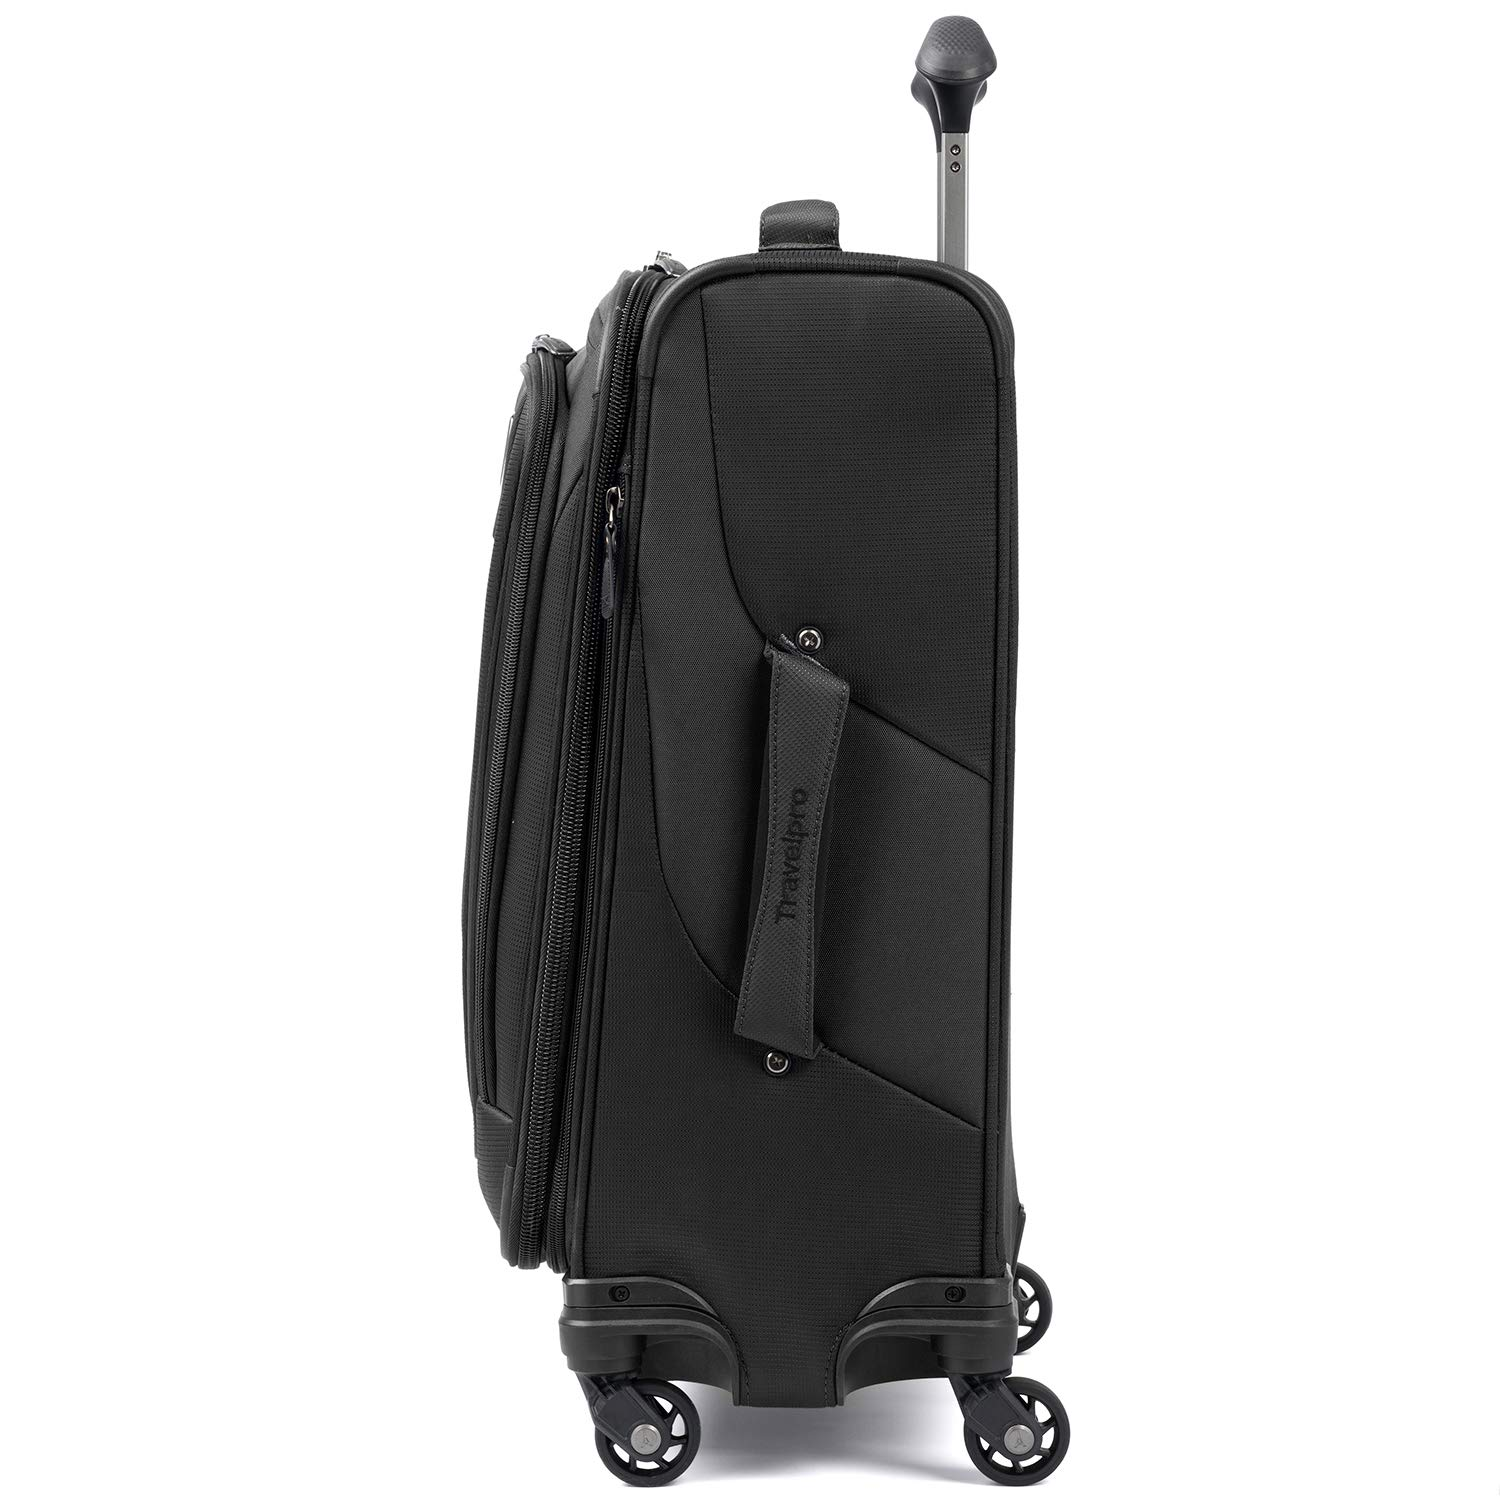 Travelpro Maxlite 4 Expandable 21 Inch Spinner Suitcase, Black by Travelpro (Image #3)